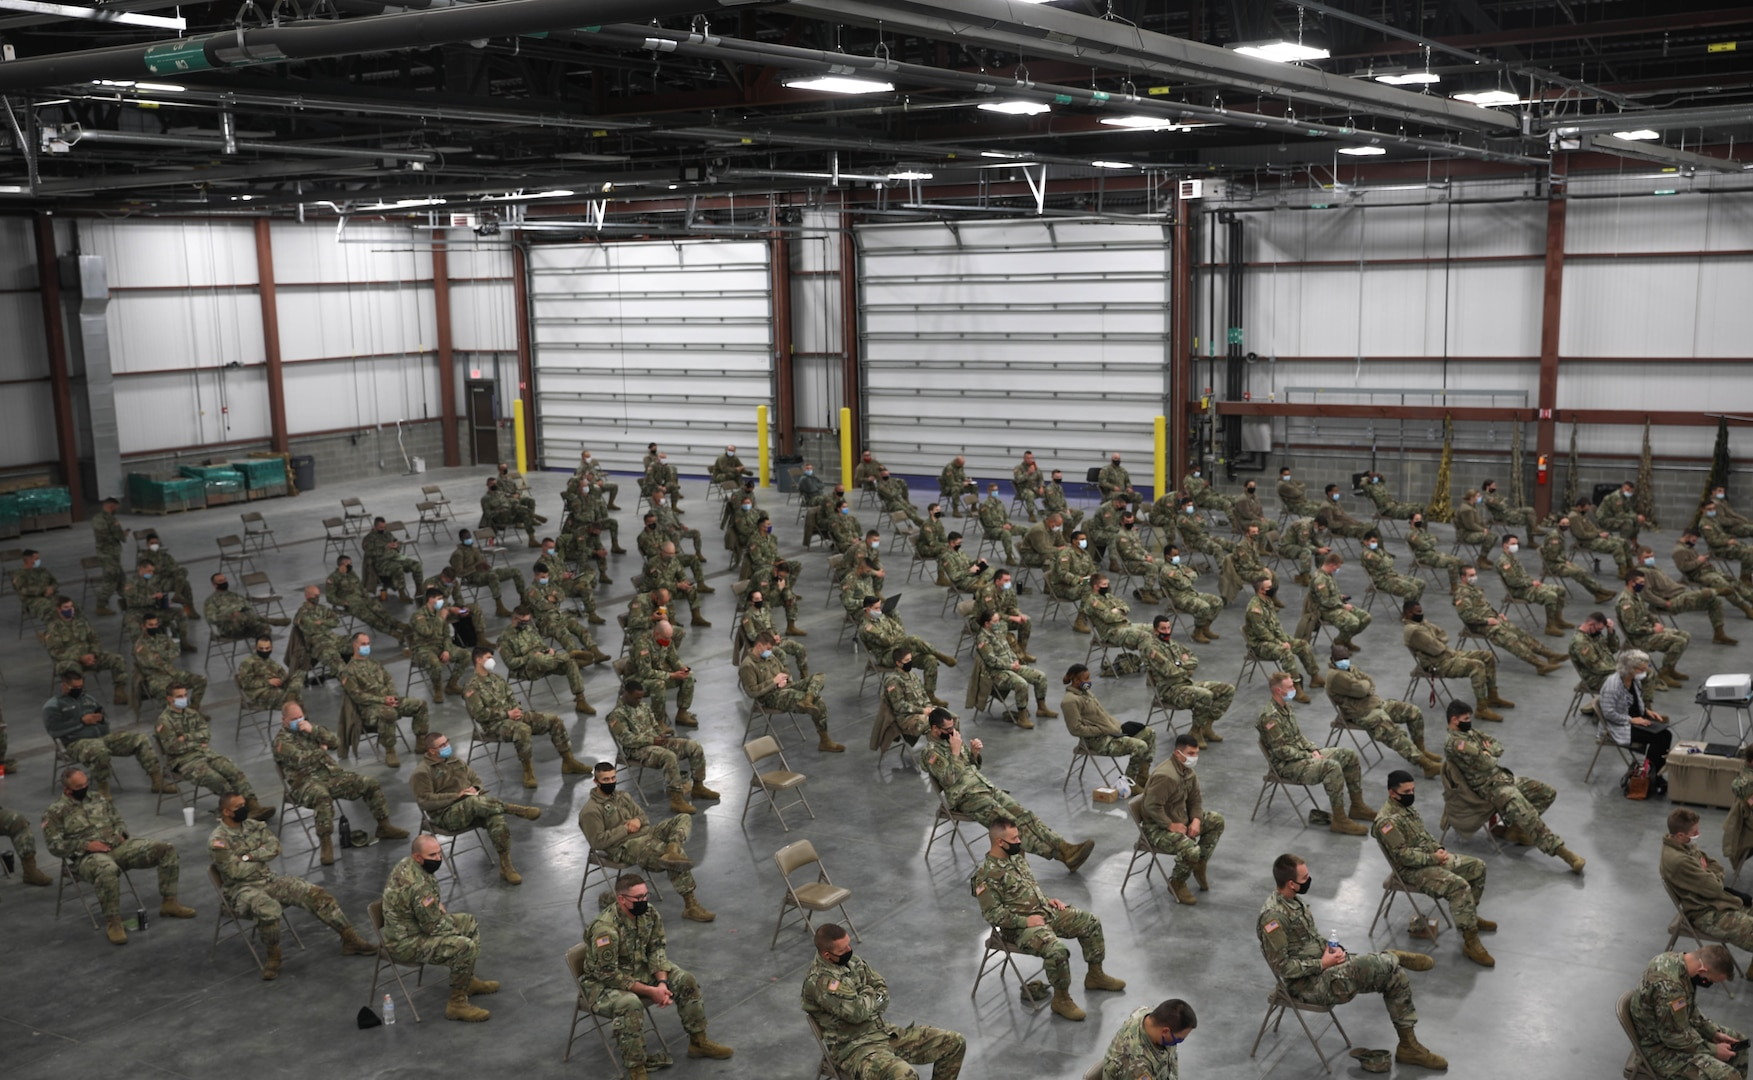 Indiana National Guard Soldiers listen to Brig. Gen. Dale Lyles, the adjutant general, Oct. 30, 2020, before their training mission supporting long-term care facilities throughout the state. More than 1,300 members of the Indiana National Guard will assist with testing and other measures to limit the spread of COVID-19 at the facilities.